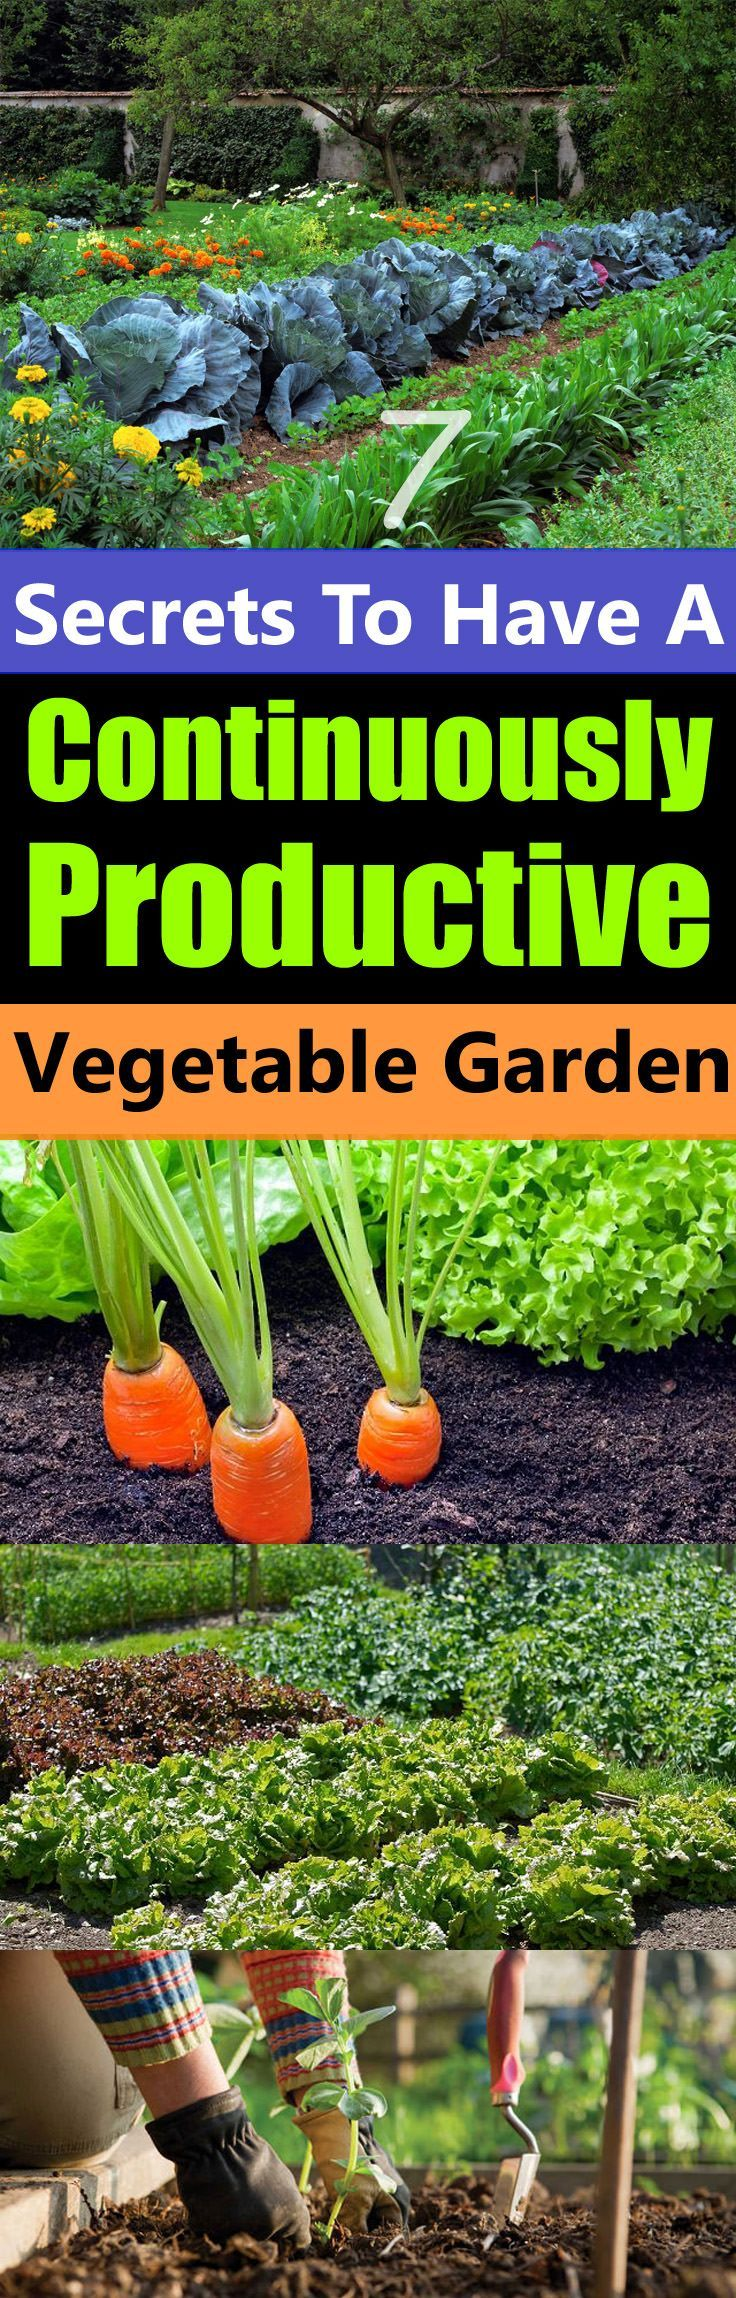 Garden Design Vegetables And Flowers best 25+ vegetable gardening ideas on pinterest | gardening